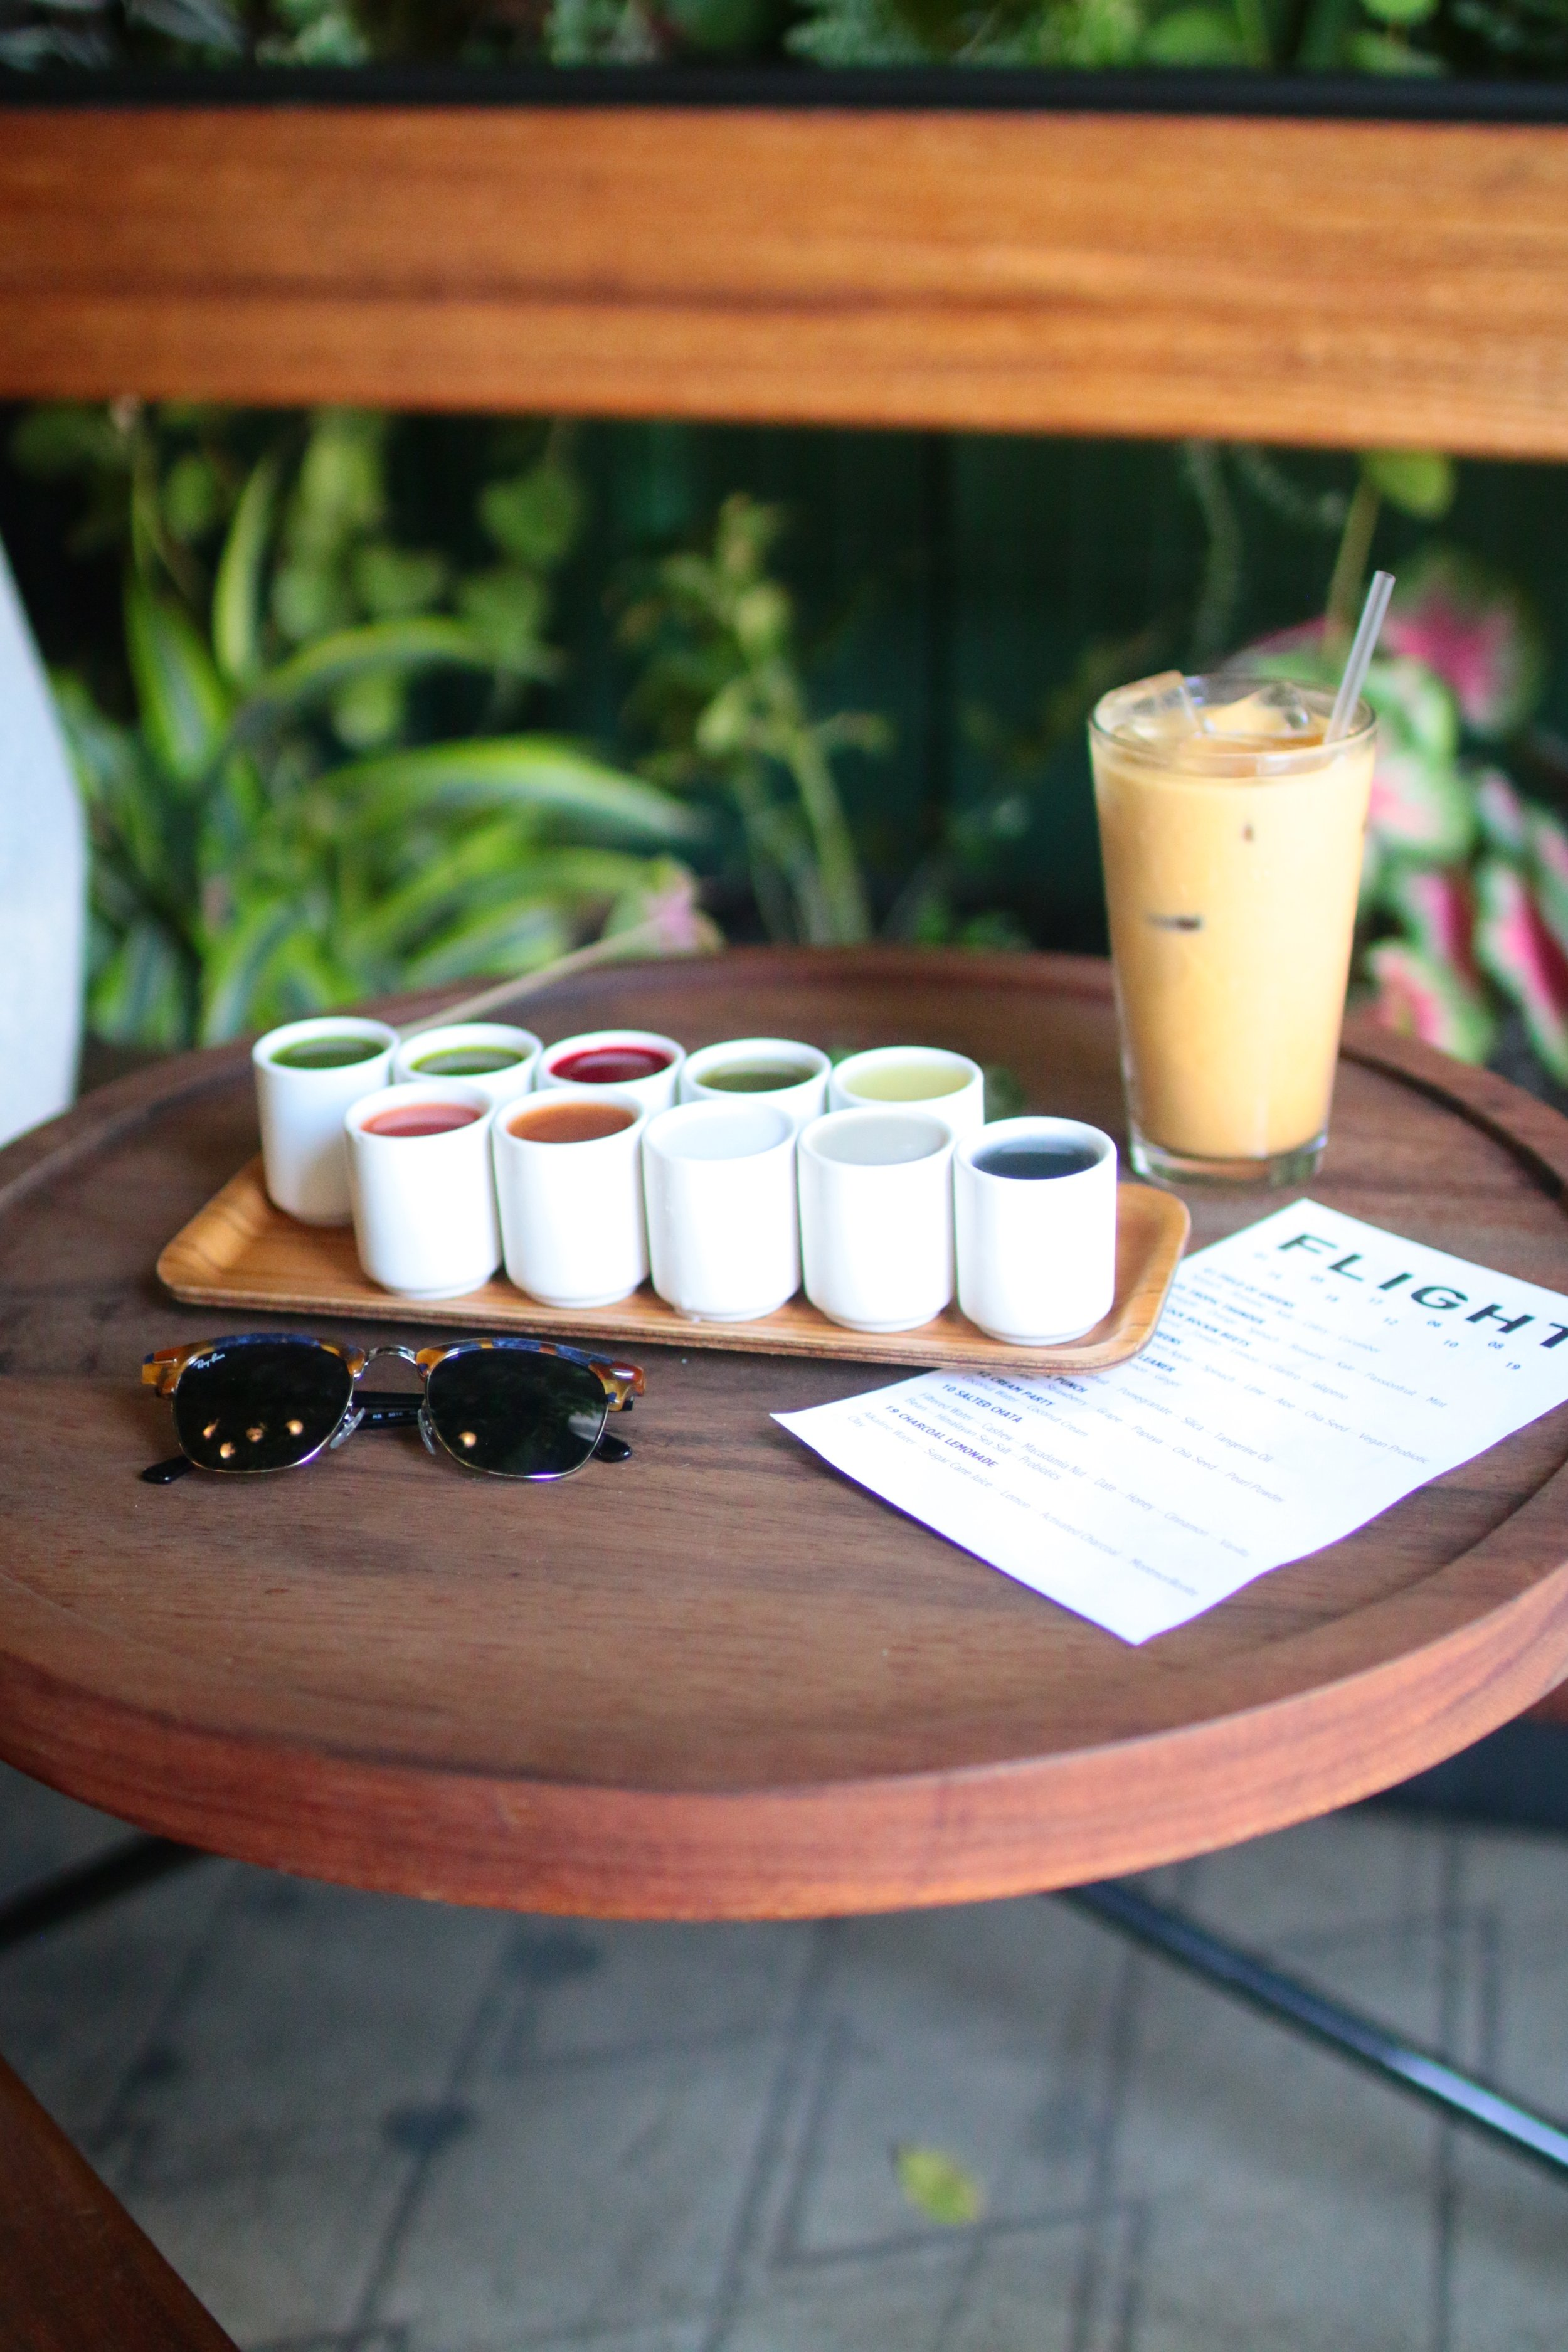 the coffee & the food - At Verve I ordered The Missile iced coffee ($5.50), which was recommend to me by a staff member there. The Missile is another absolutely wonderfully sweet drink, no additional sweetener needed! This is a great go to as the weather starts to warm up again since it comes iced and is so refreshing!I also decided to switch it up and try a sampler platter from the brand 'Juice.' The juice sampler is a bit more hit or miss and will vary depending on what each person likes and orders! I had a ton of a fun trying each flavor and seeing which I liked best. My favorites are definitely Pearl Punch & Tropic Thunder. Overall, this was a super fun activity, so grab a friend and get a juice sampler of your own!